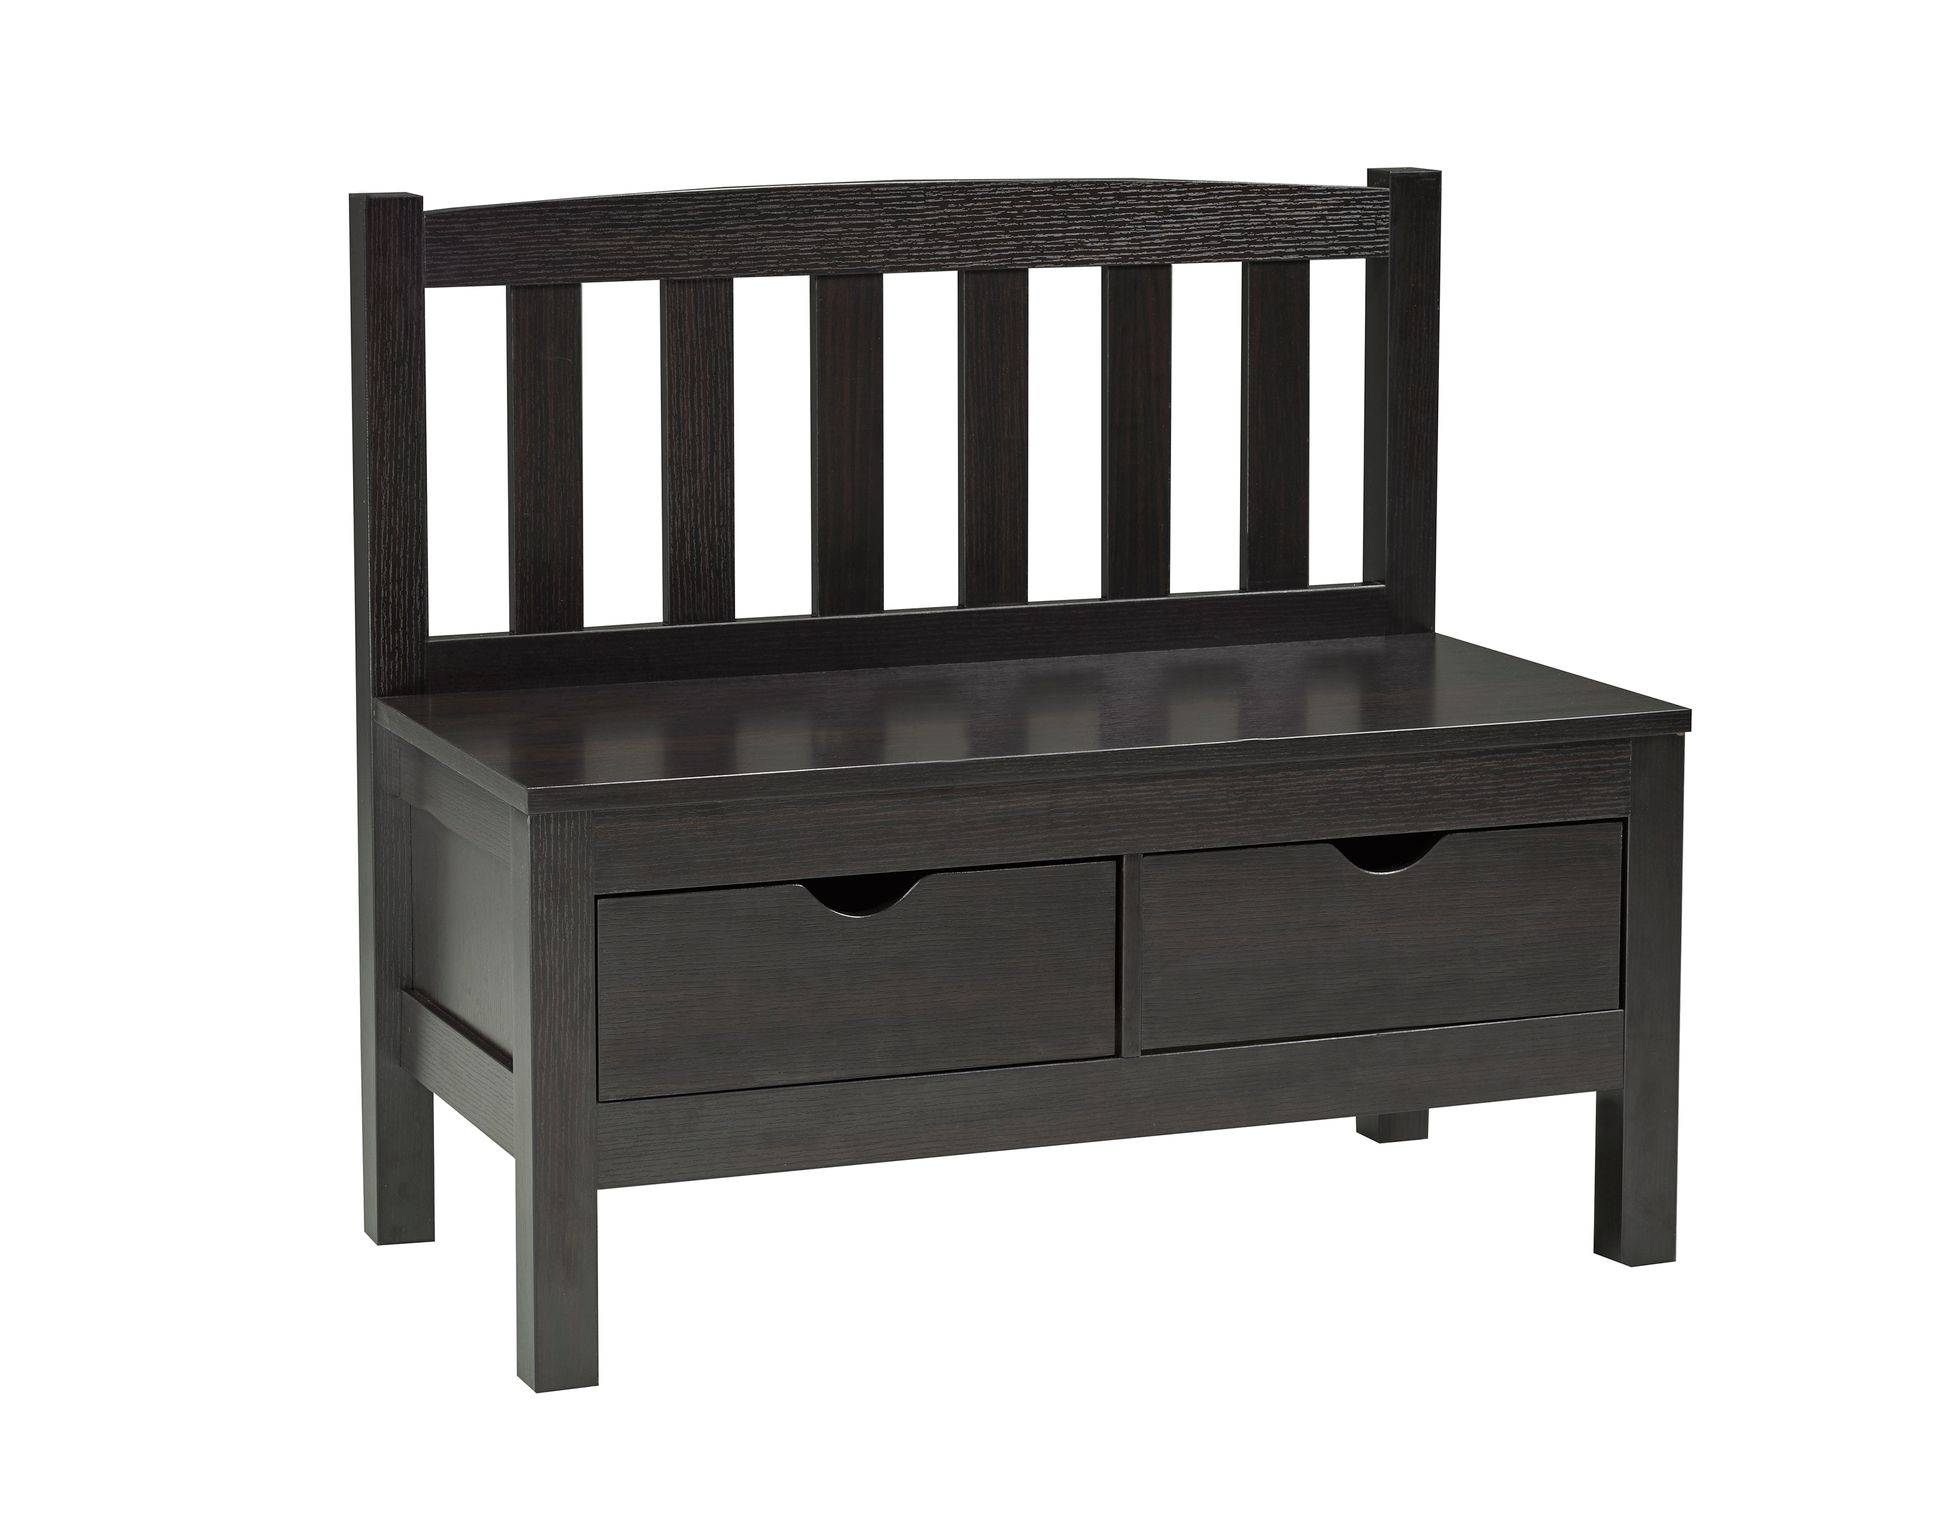 ACCENT BENCH - DARK CHERRY